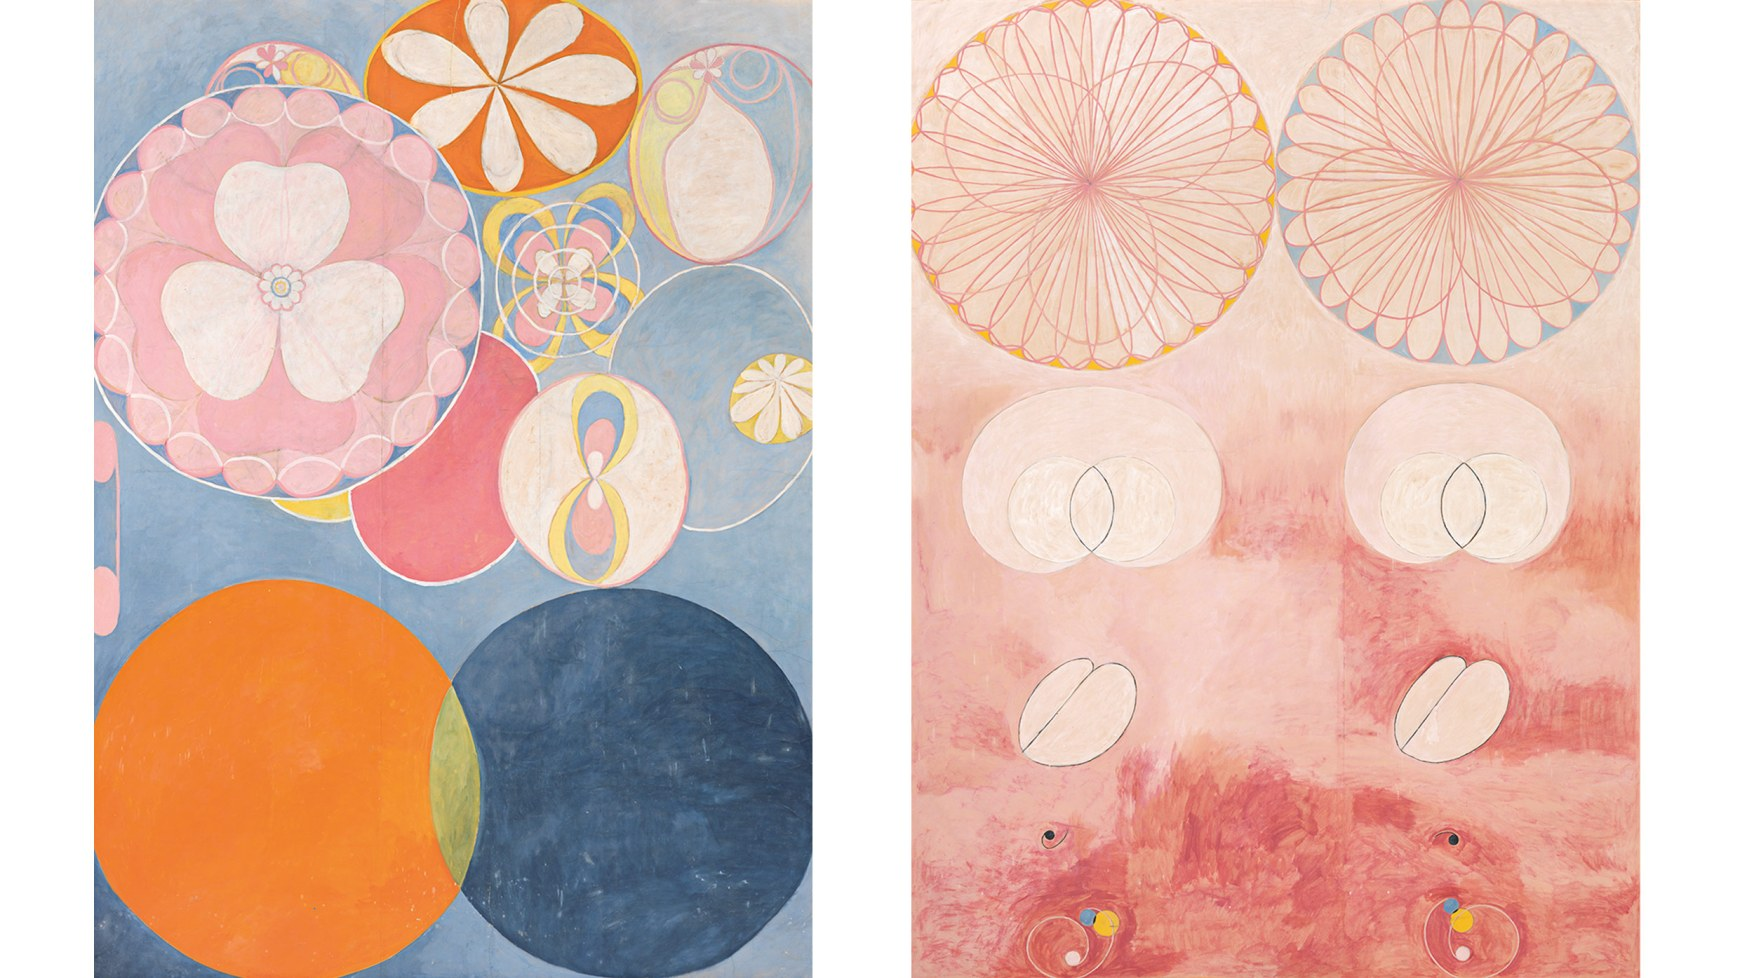 Two paintings. The first: Various circles and florals in pastels, including a pink flower/clover in a blue circle, a white daisy-type flower in an orange circle ringed with yellow and another in a yellow circle, and an orange circle and a blue circle interesecting with the small overlap in yellow. The second: Doubles of various figures on a pink/peach background: a flower/clover pattern ringed by yellow on one side, blue on the other; two intersecting circles surrounded by a larger lima-bean shape; a halved pod, a small black dot with a tail, and a swirl with yellow, blue and white circles.